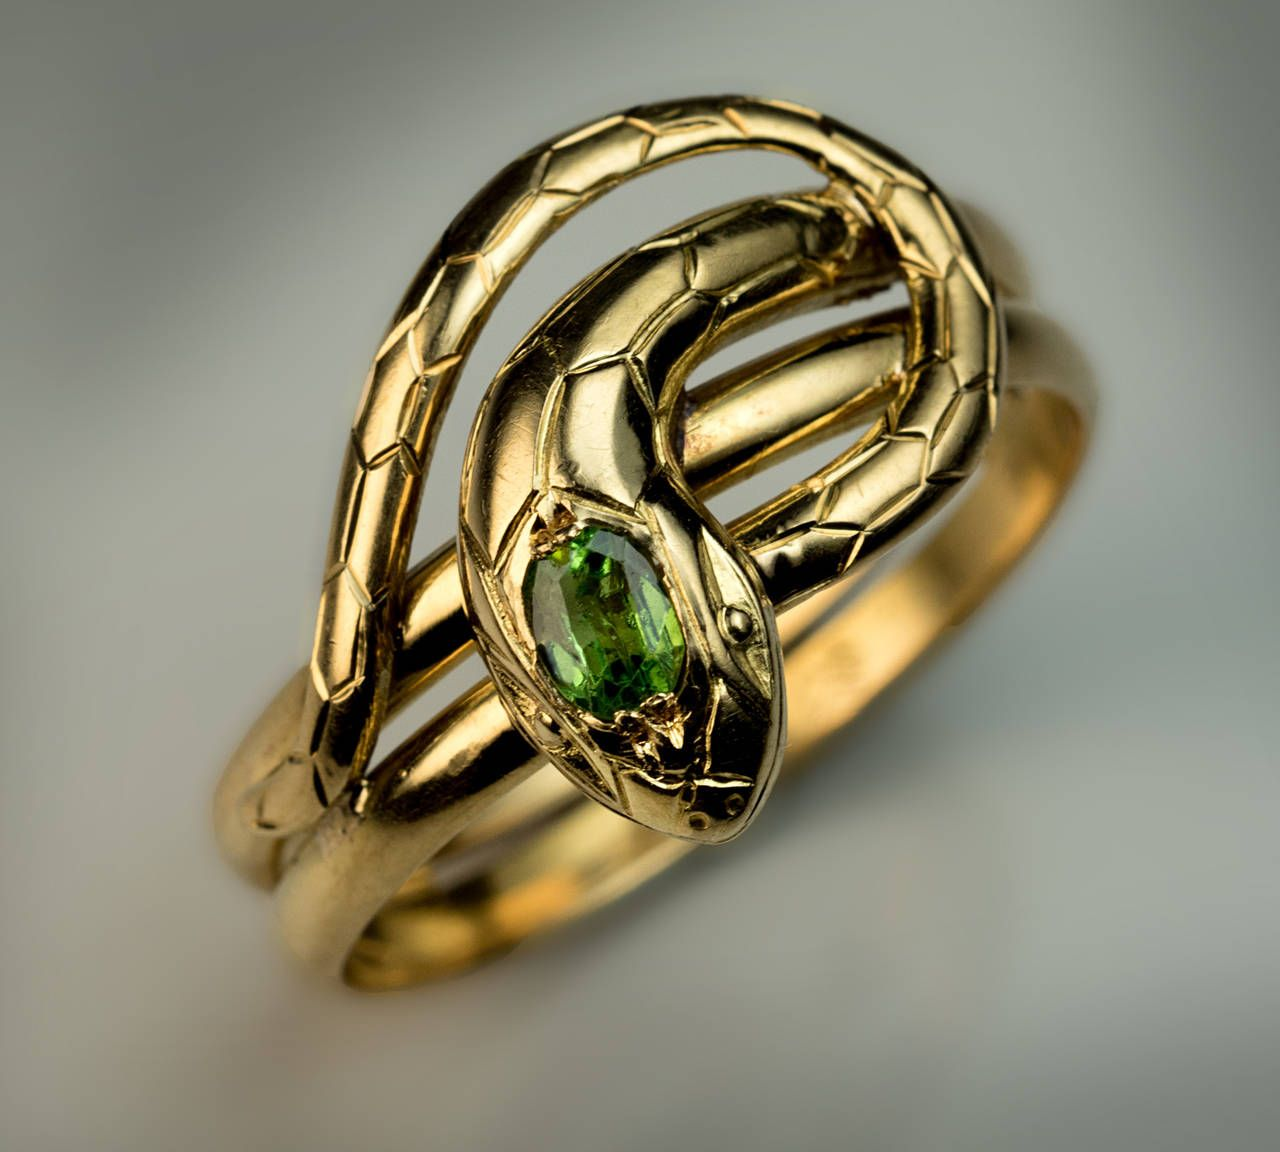 Antique Demantoid Gold Snake Ring | From a unique collection of vintage more rings at https://www.1stdibs.com/jewelry/rings/more-rings/